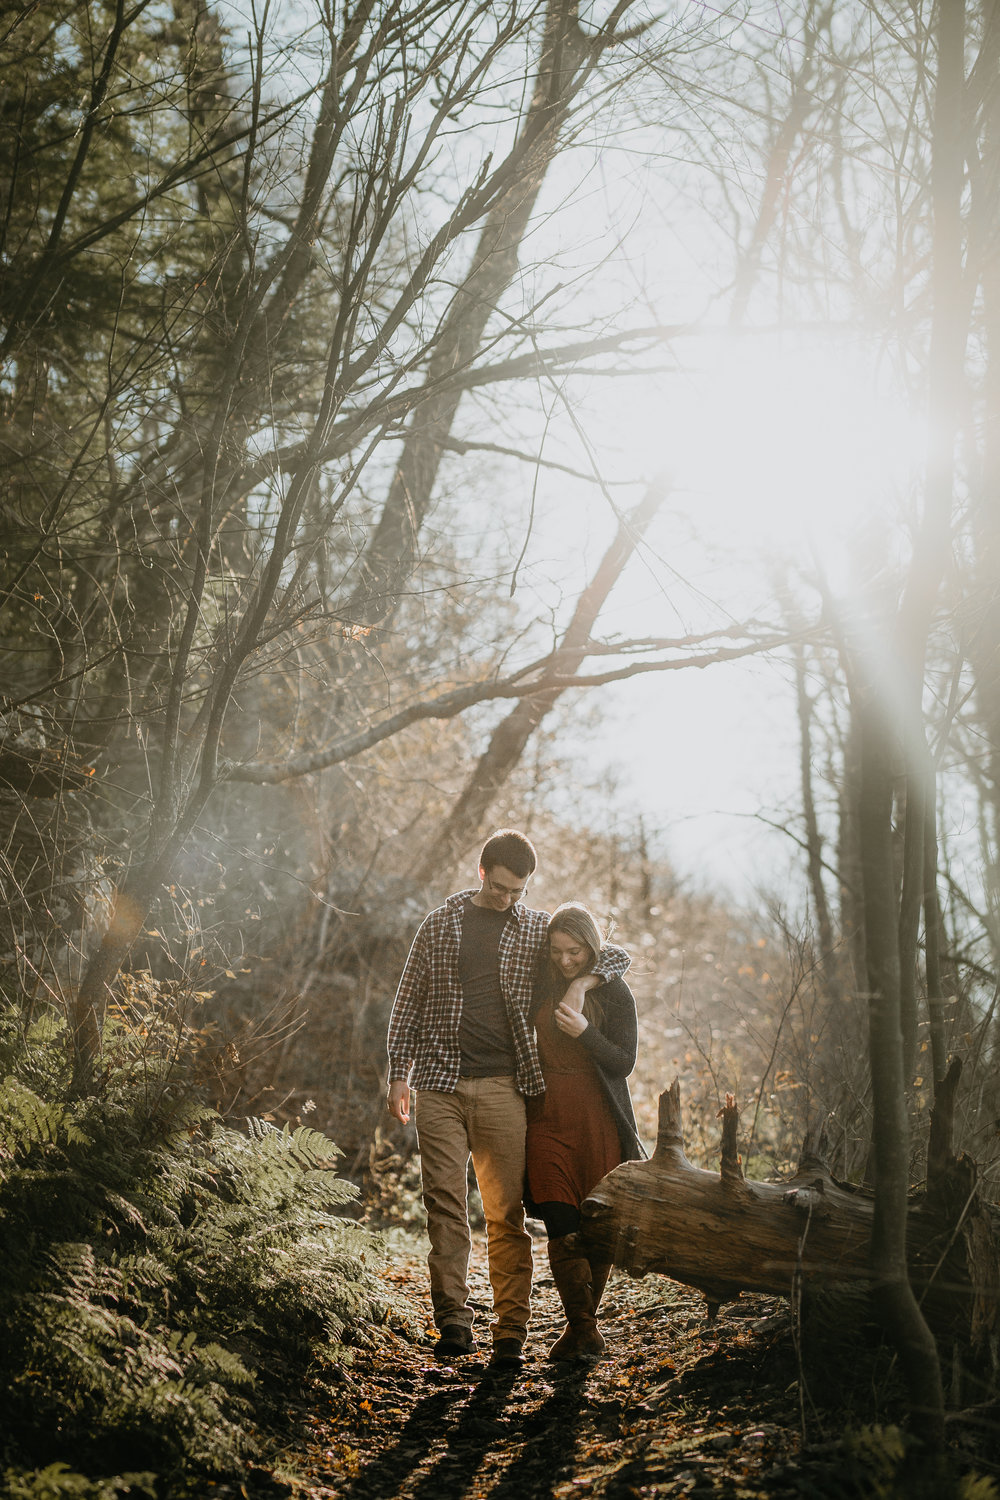 nicole-daacke-photography-shenandoah-national-park-adventure-engagement-session-with-fall-foliage-shenandoah-elopement-photographer-engagement-photos-in-virginia-charlottesville-national-park-adventure-elopement-photographer-3639.jpg